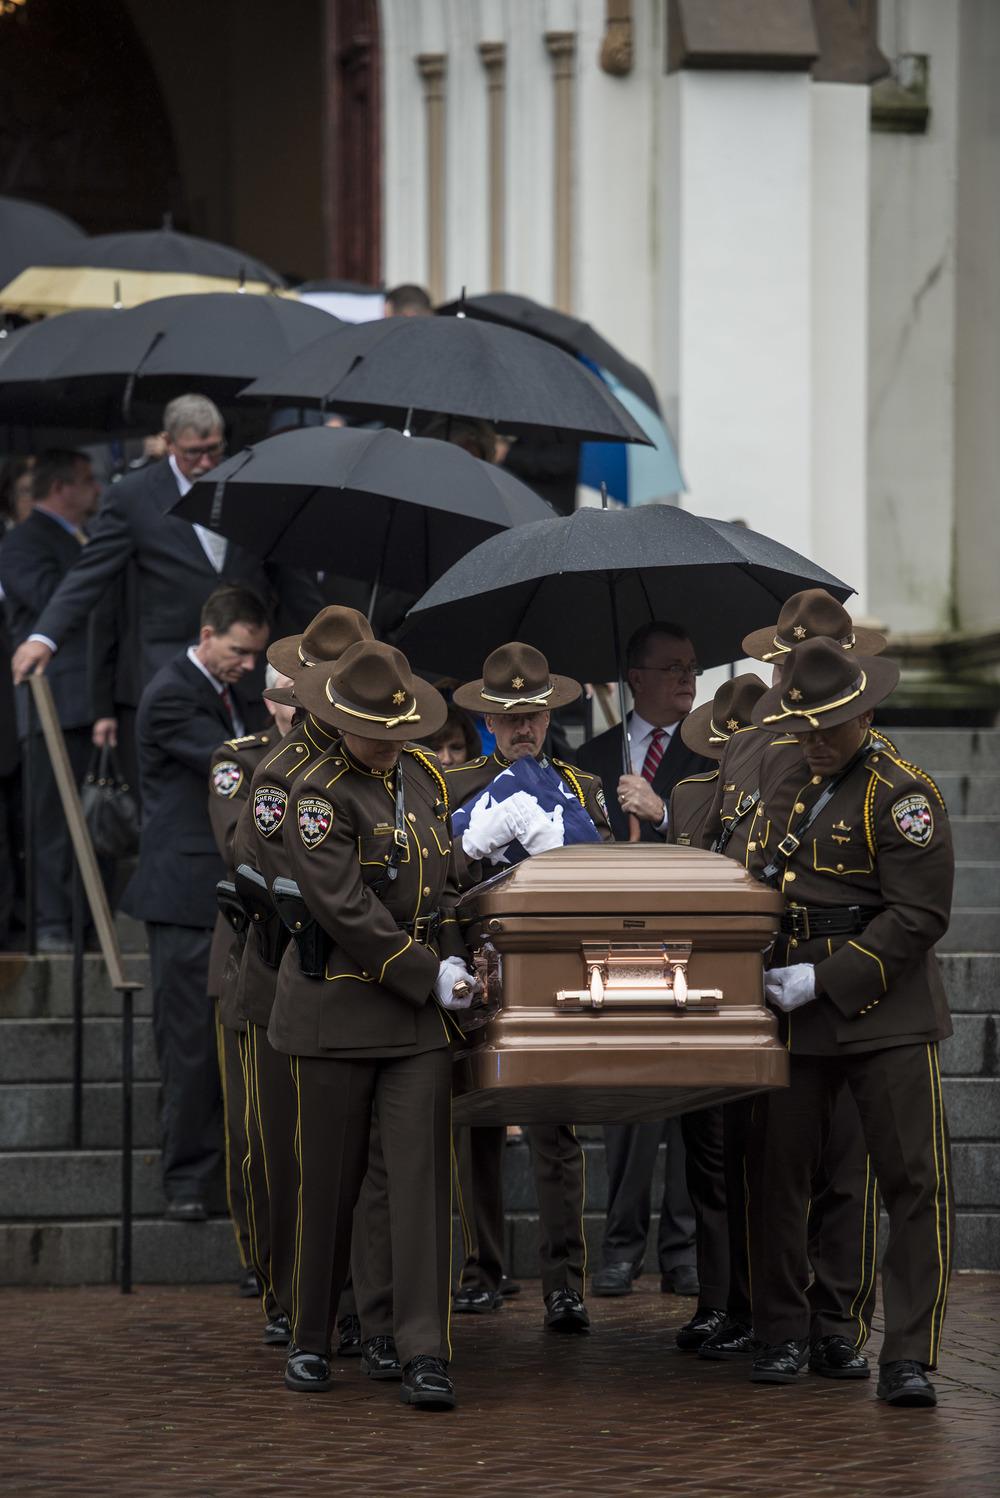 The honor guard leaves the Cathedral of St. John the Baptist during the funeral for former Sheriff Al St Lawrence who died at the age of 81 after battling cancer for a year.